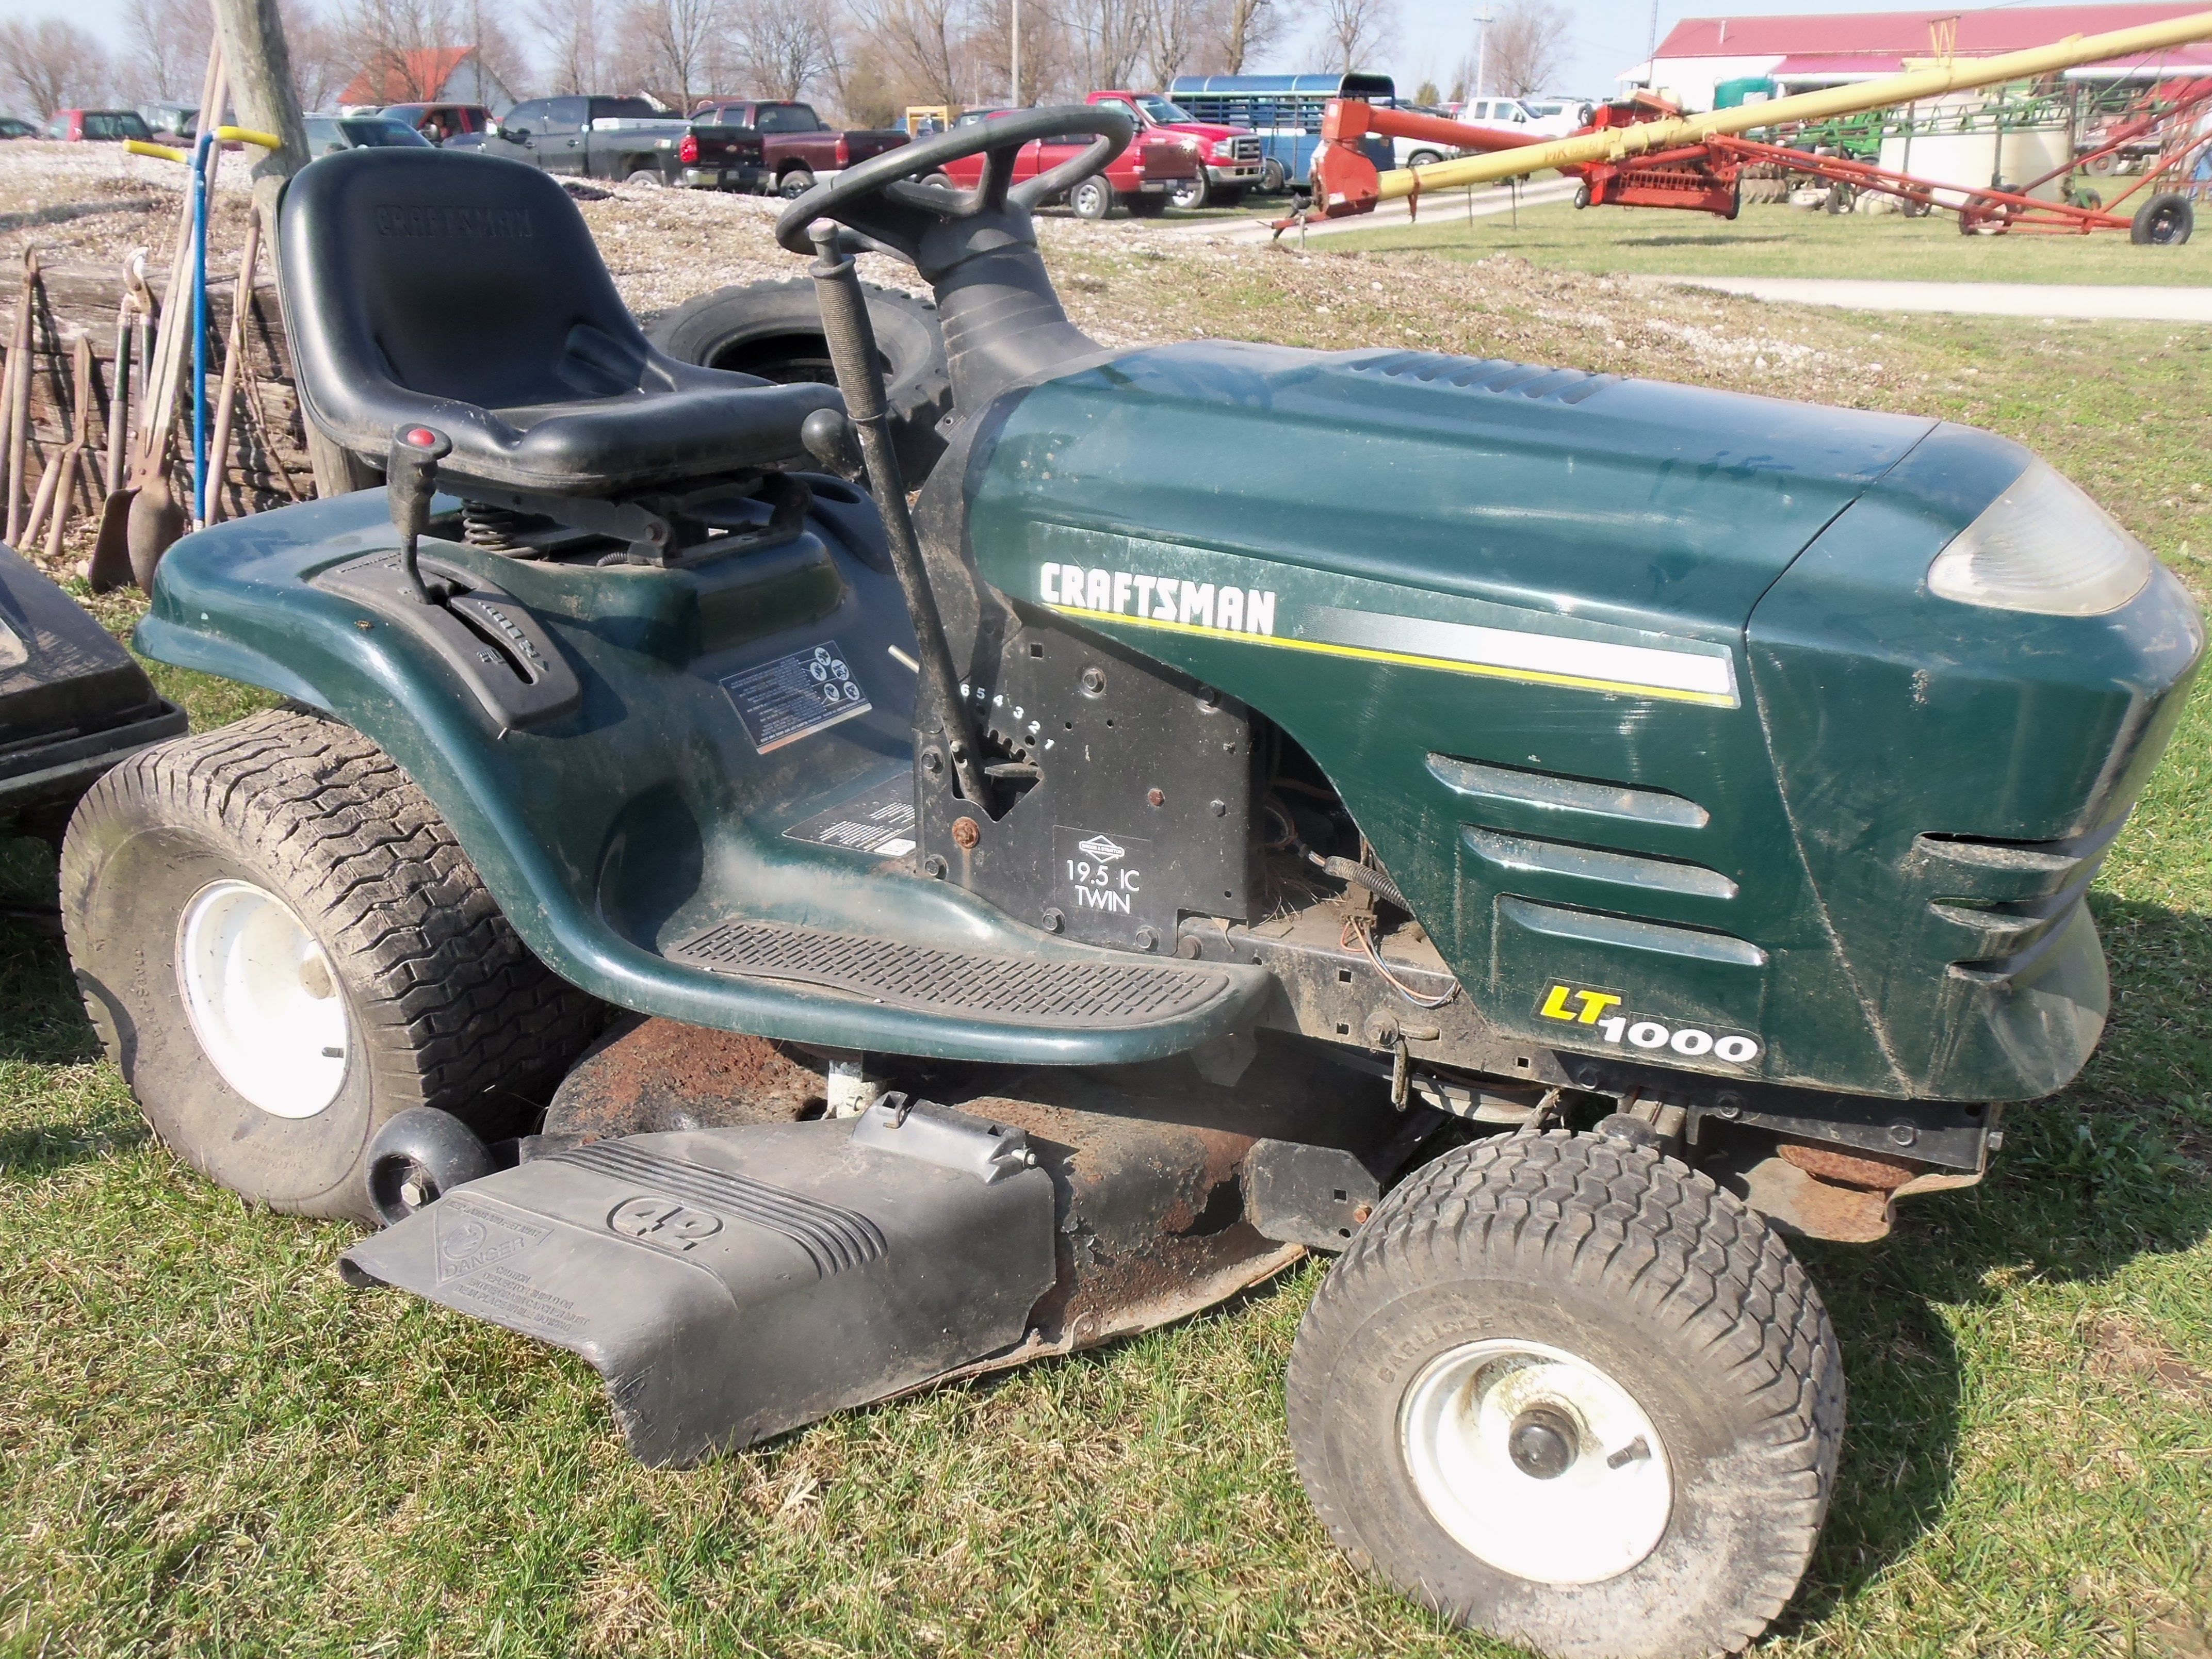 Riding Lawn Mowers Nashville Craigslist Example